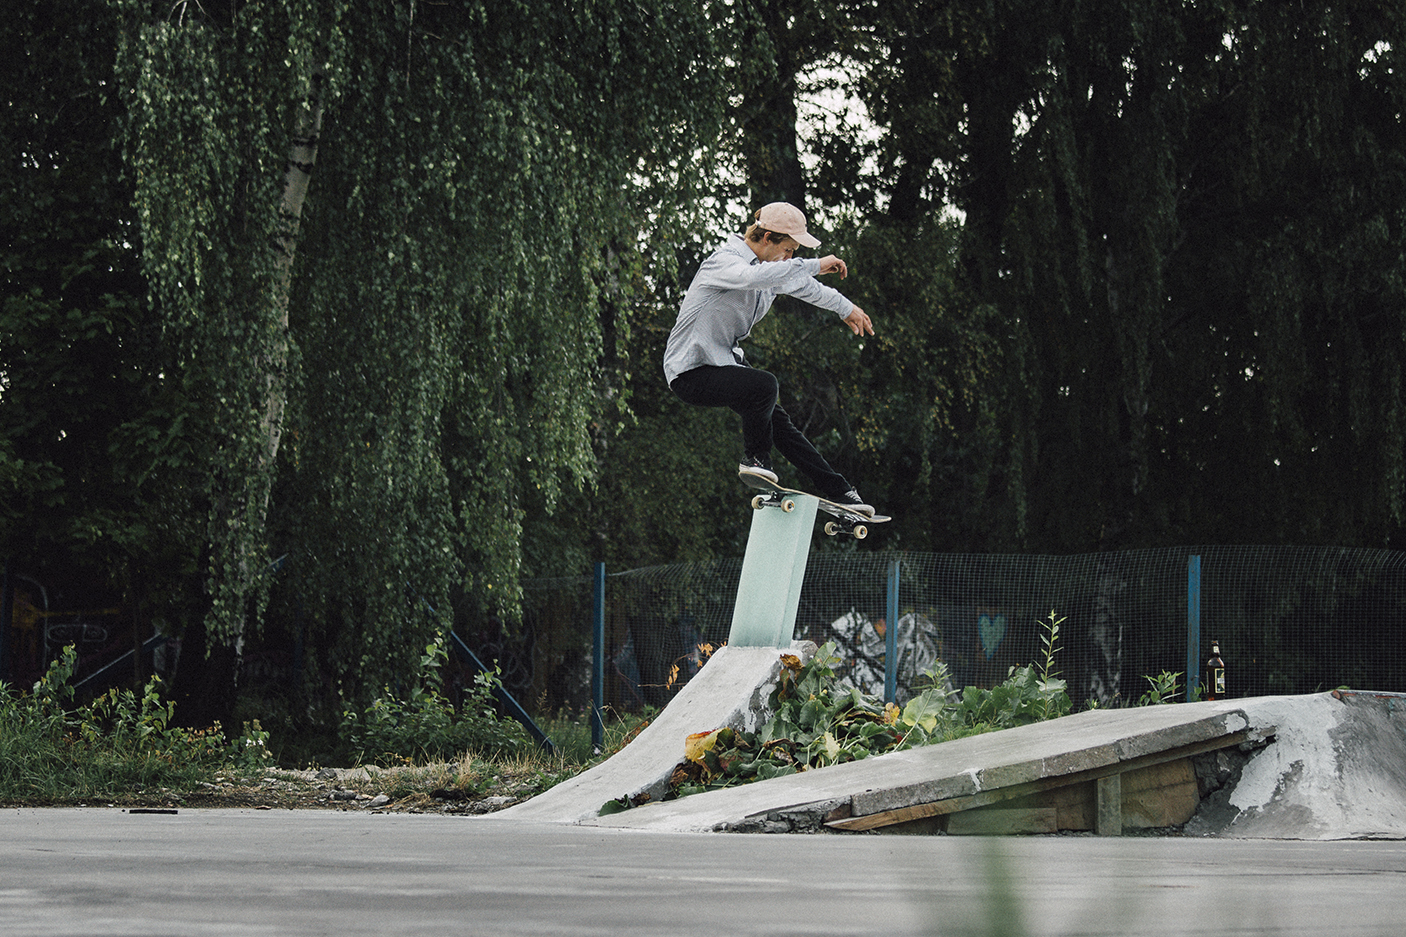 skater rock to fakie